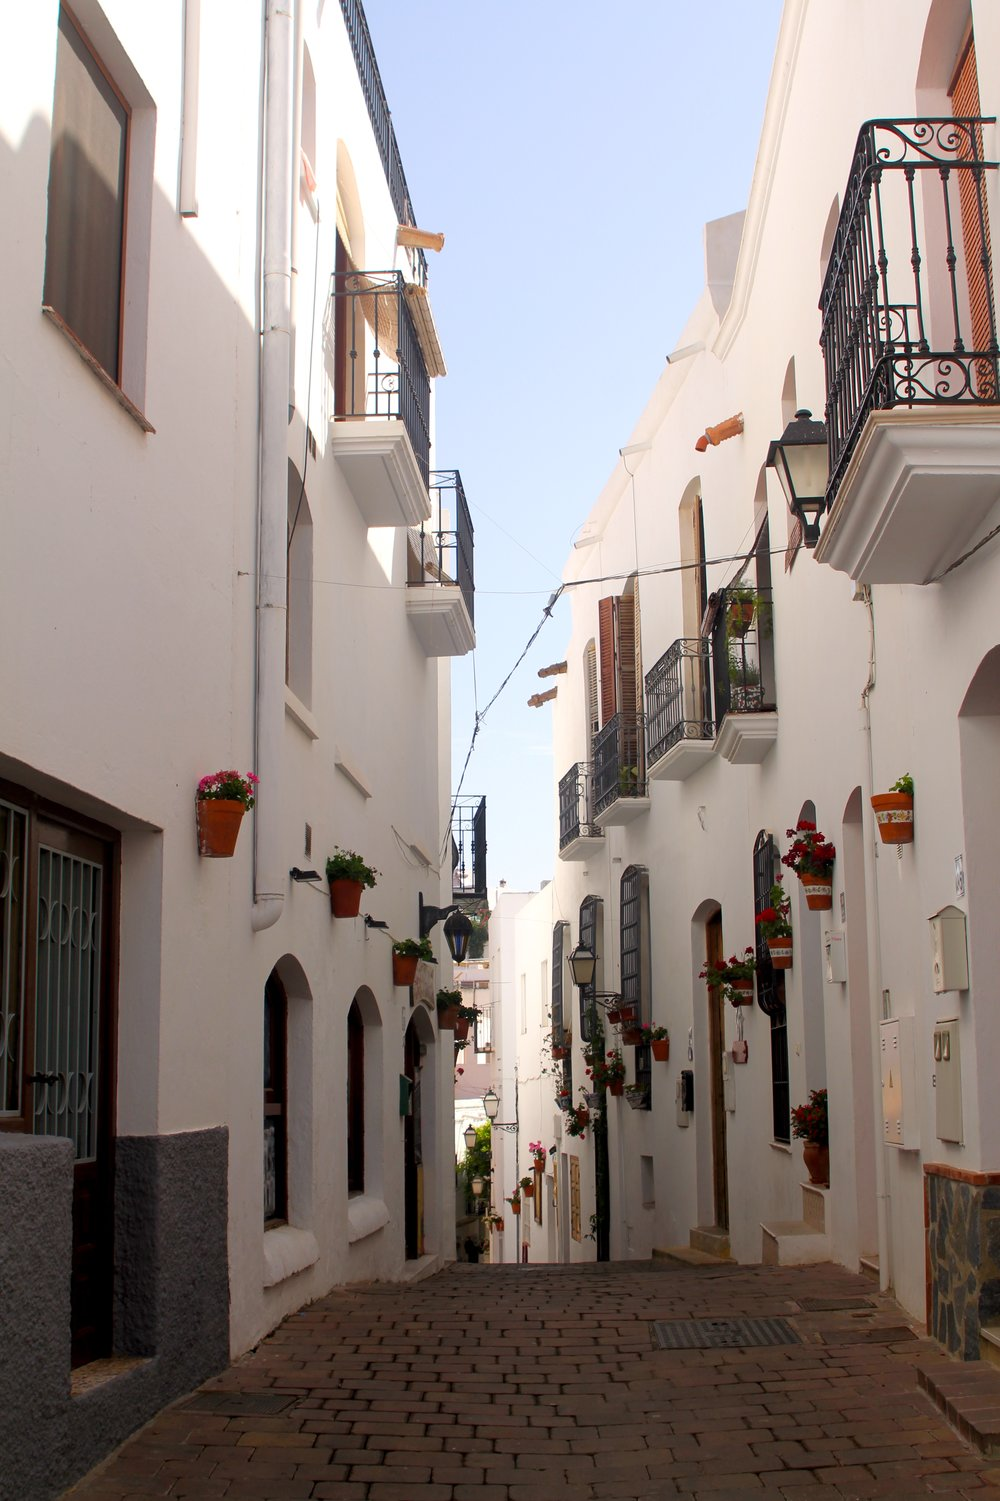 one of the lovely narrow streets in the village